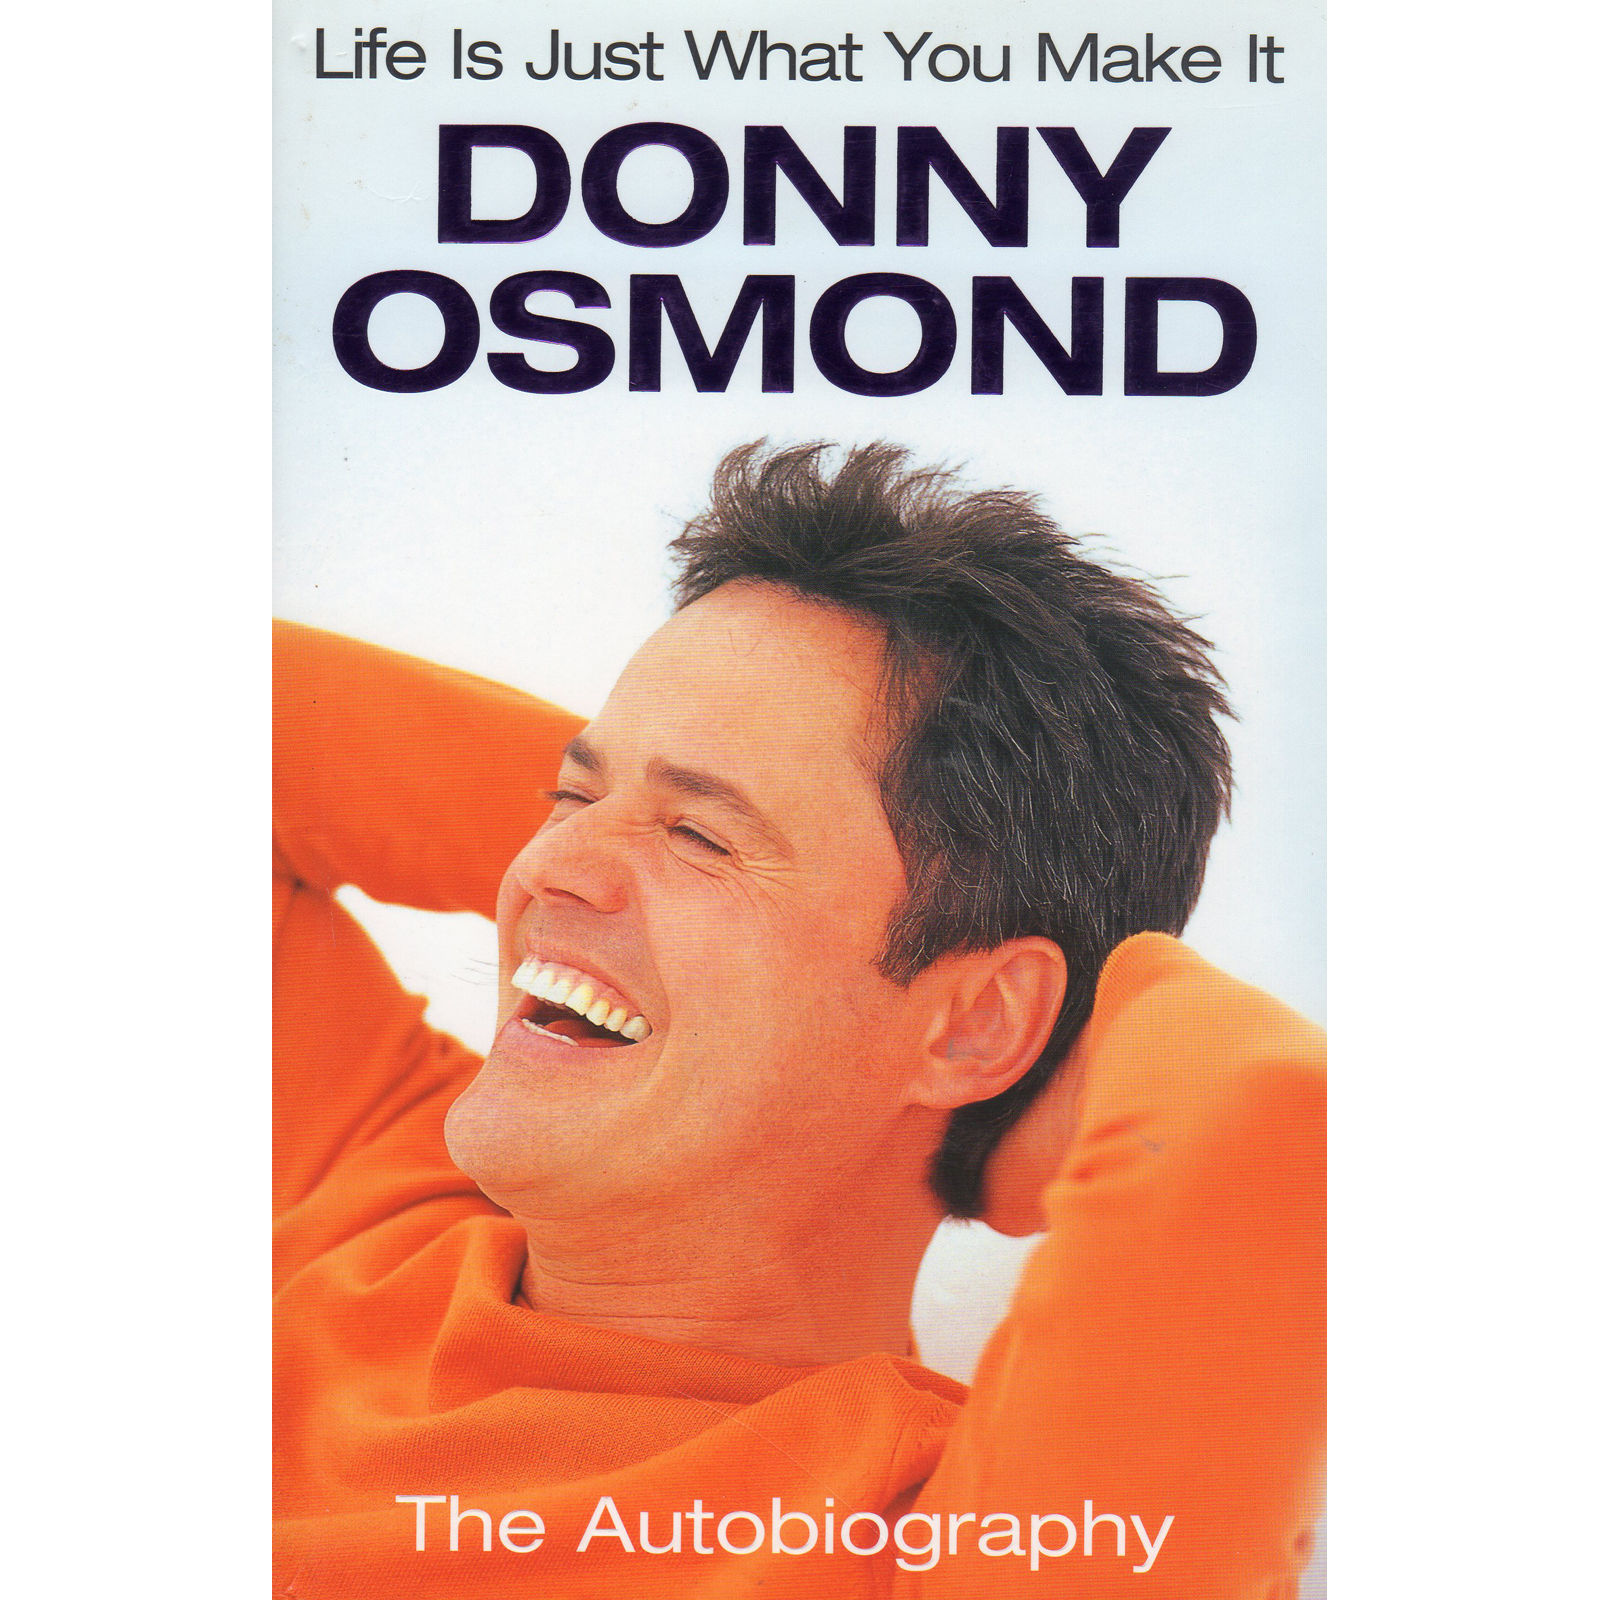 Donny Osmond Life Is Just What You Make It Book Signed